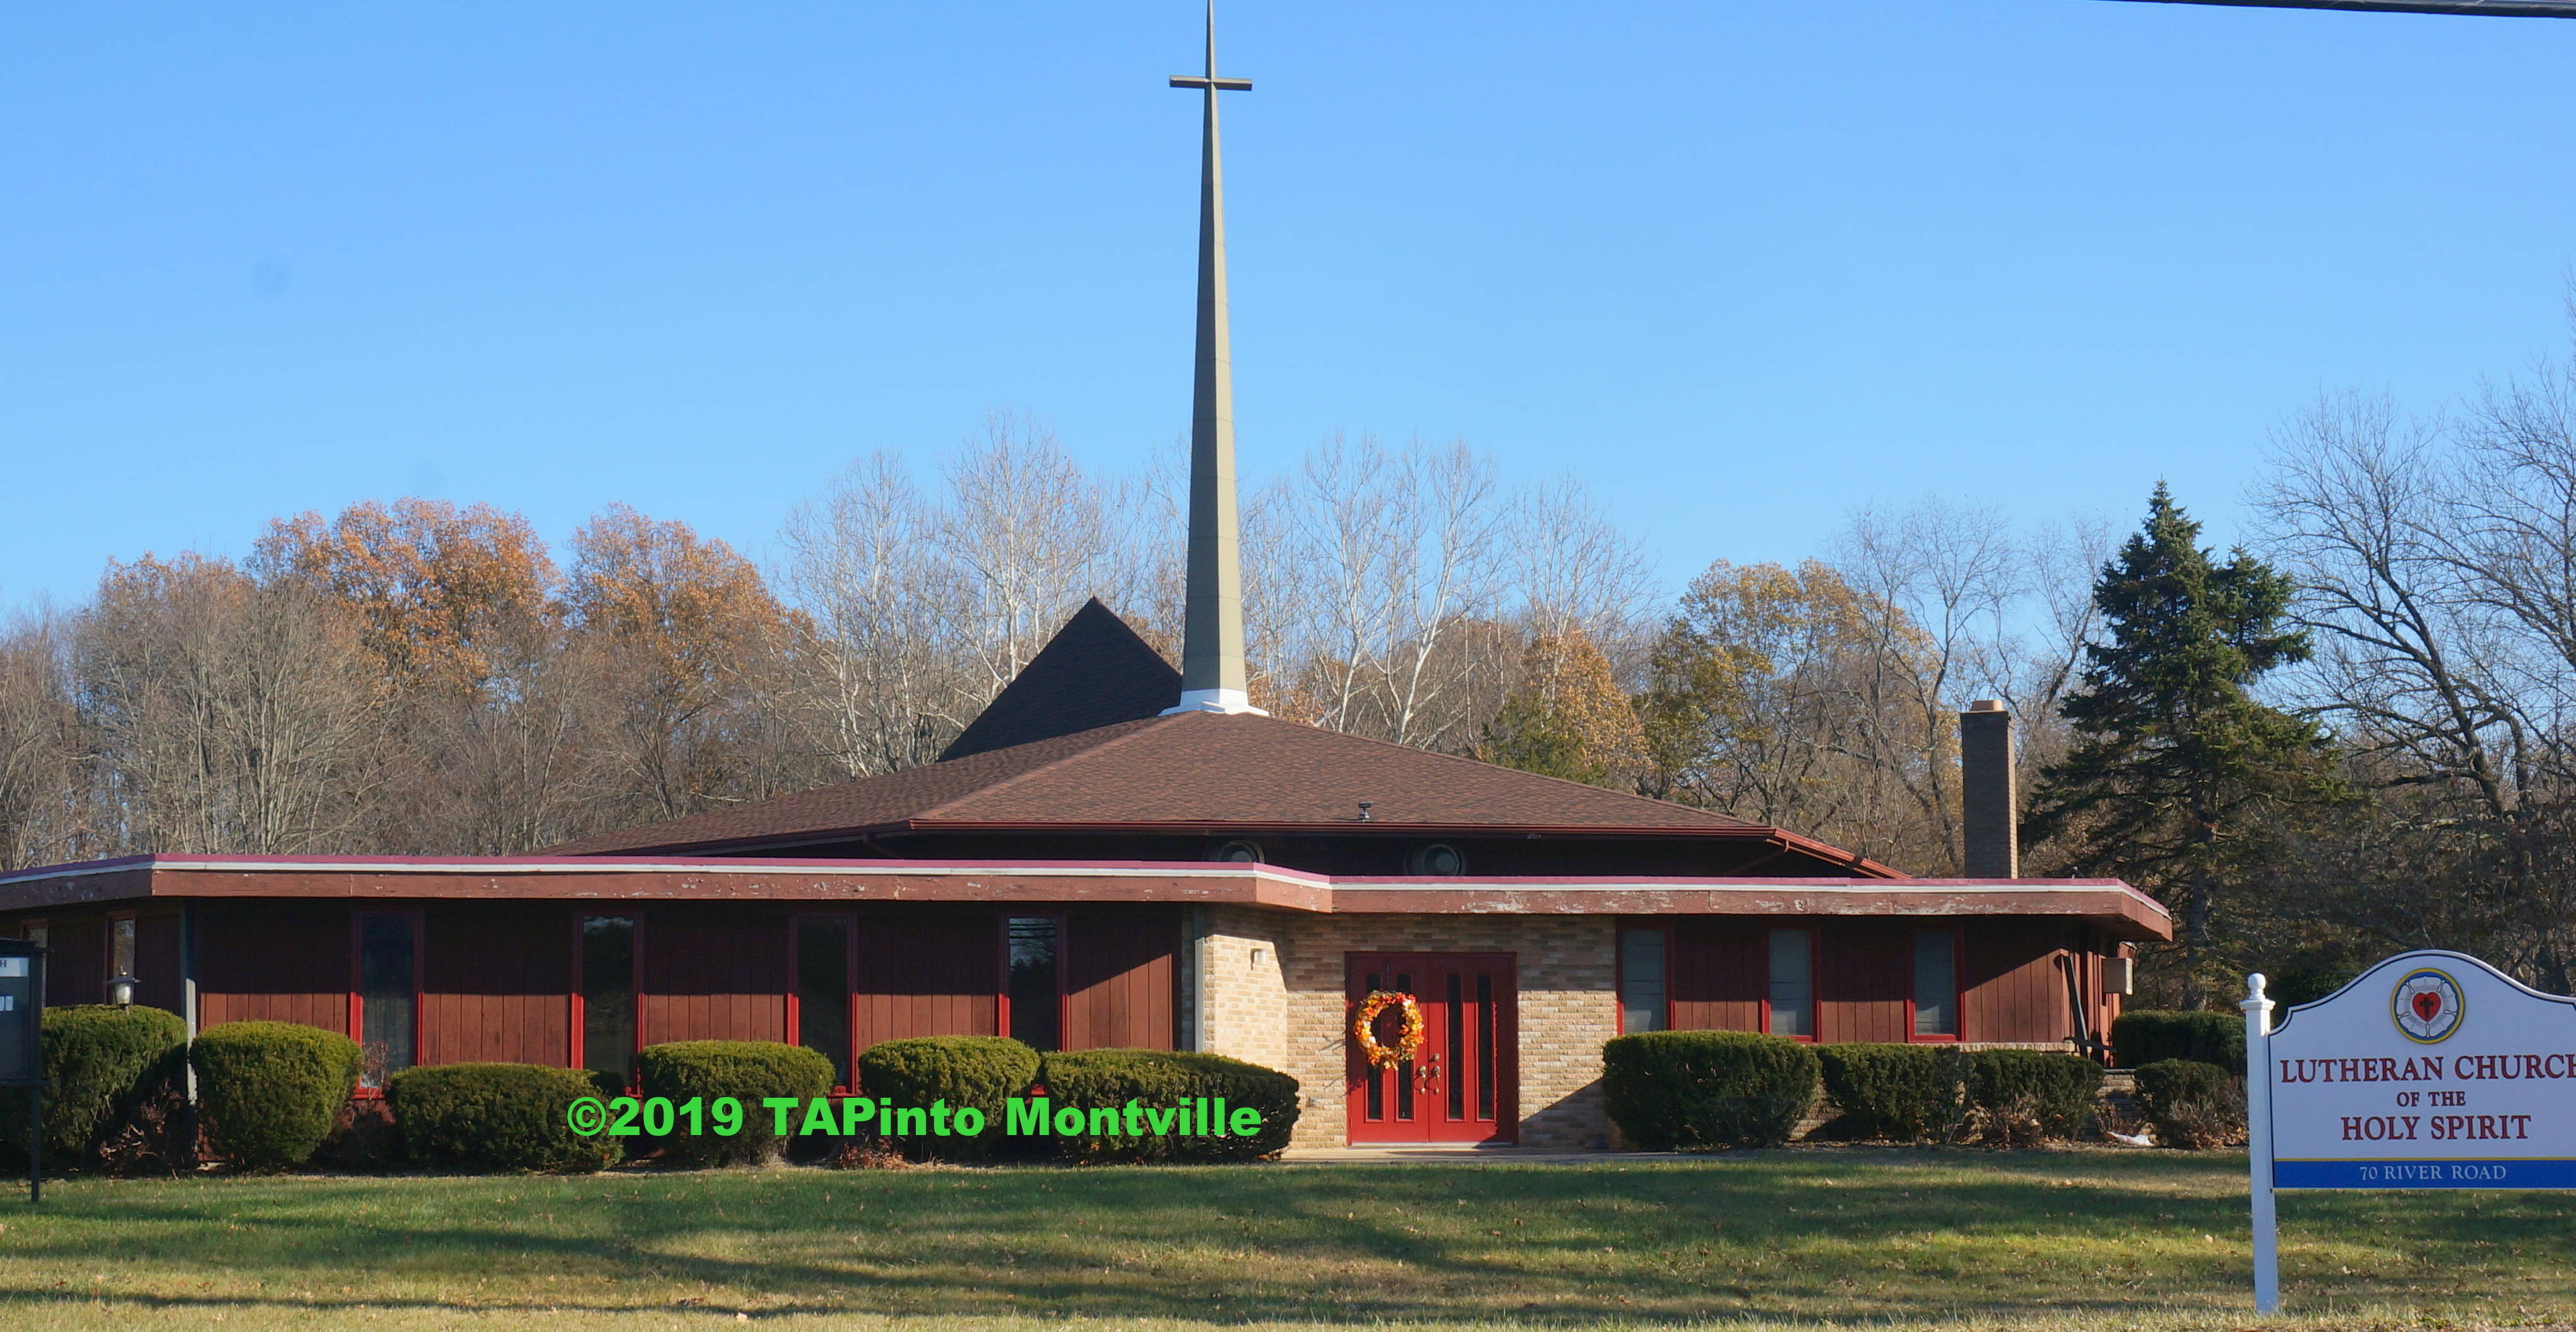 Lutheran Church of the Holy Spirit ©2019 TAPinto Montville    Melissa Benno   1..JPG